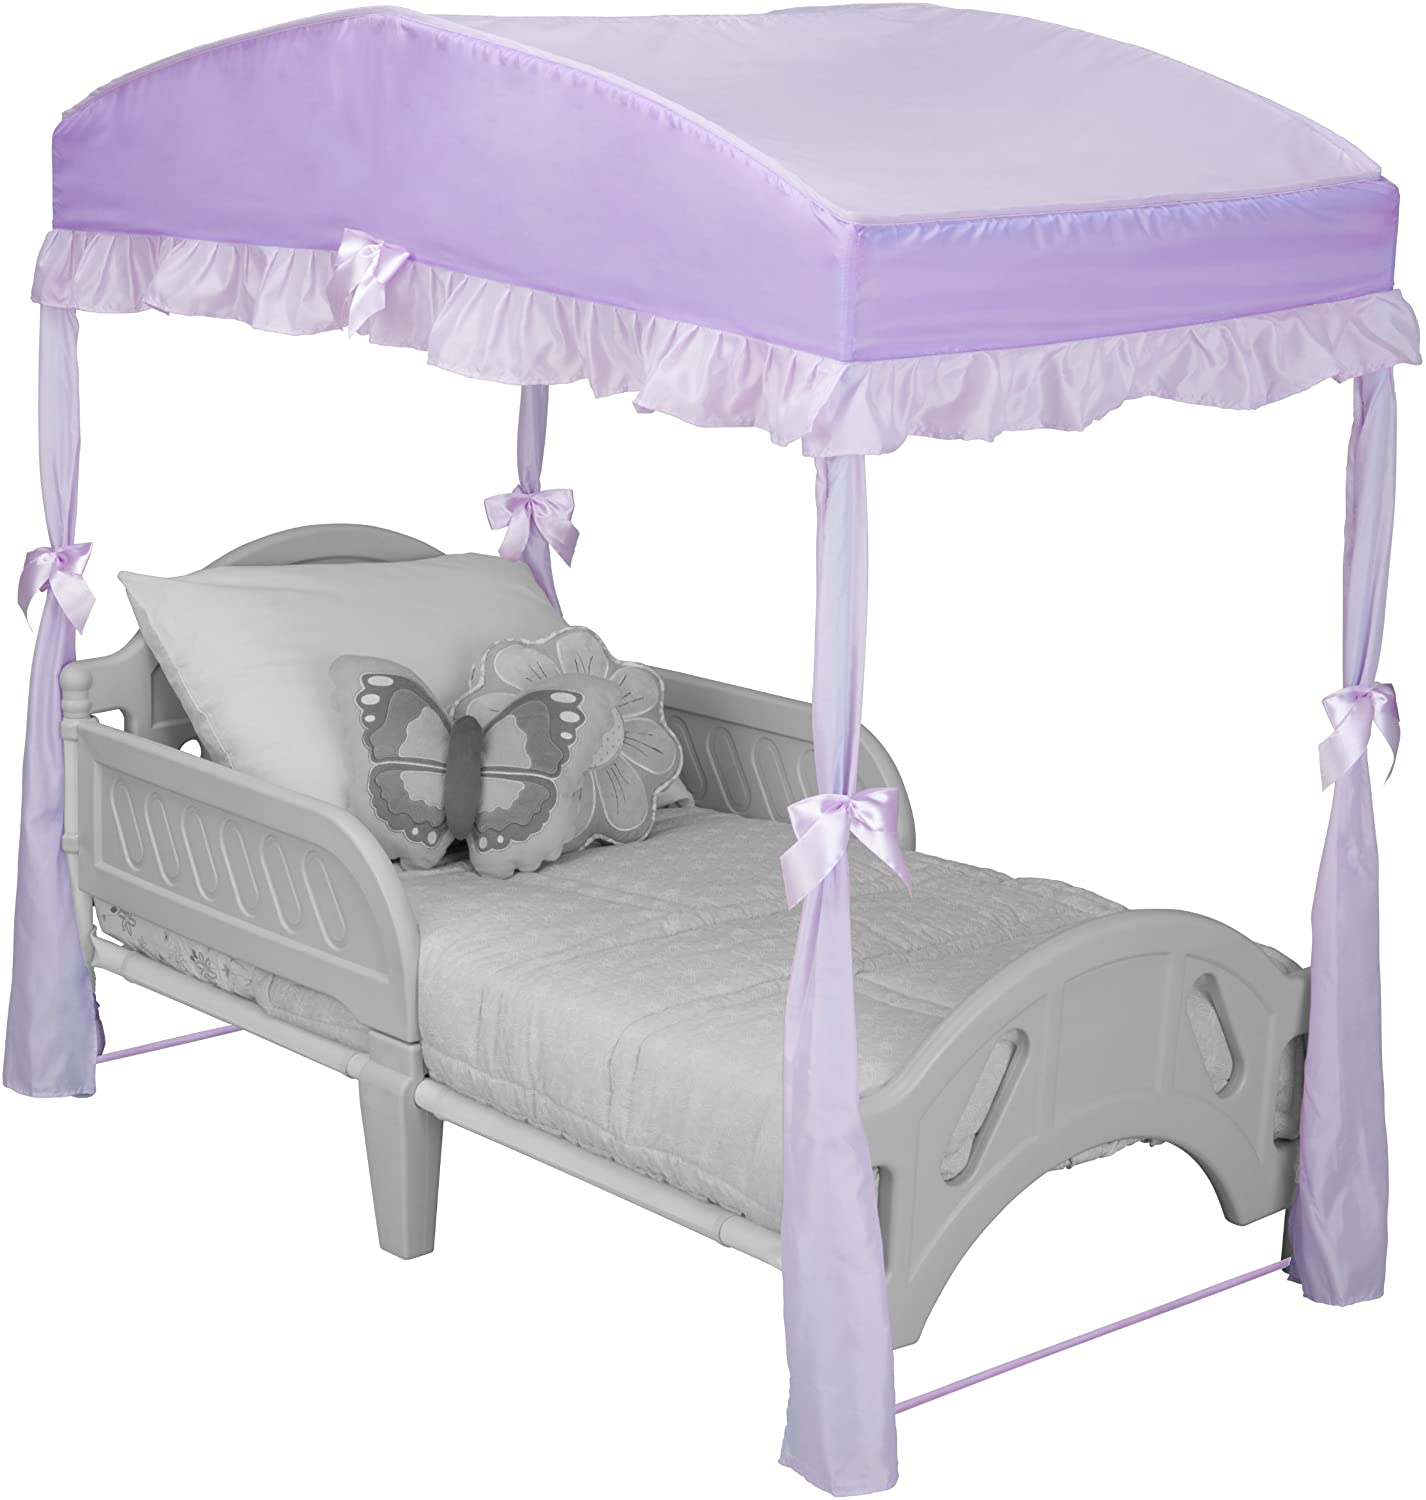 Amazoncom Delta Children Girls Canopy for Toddler Bed Pink Bed